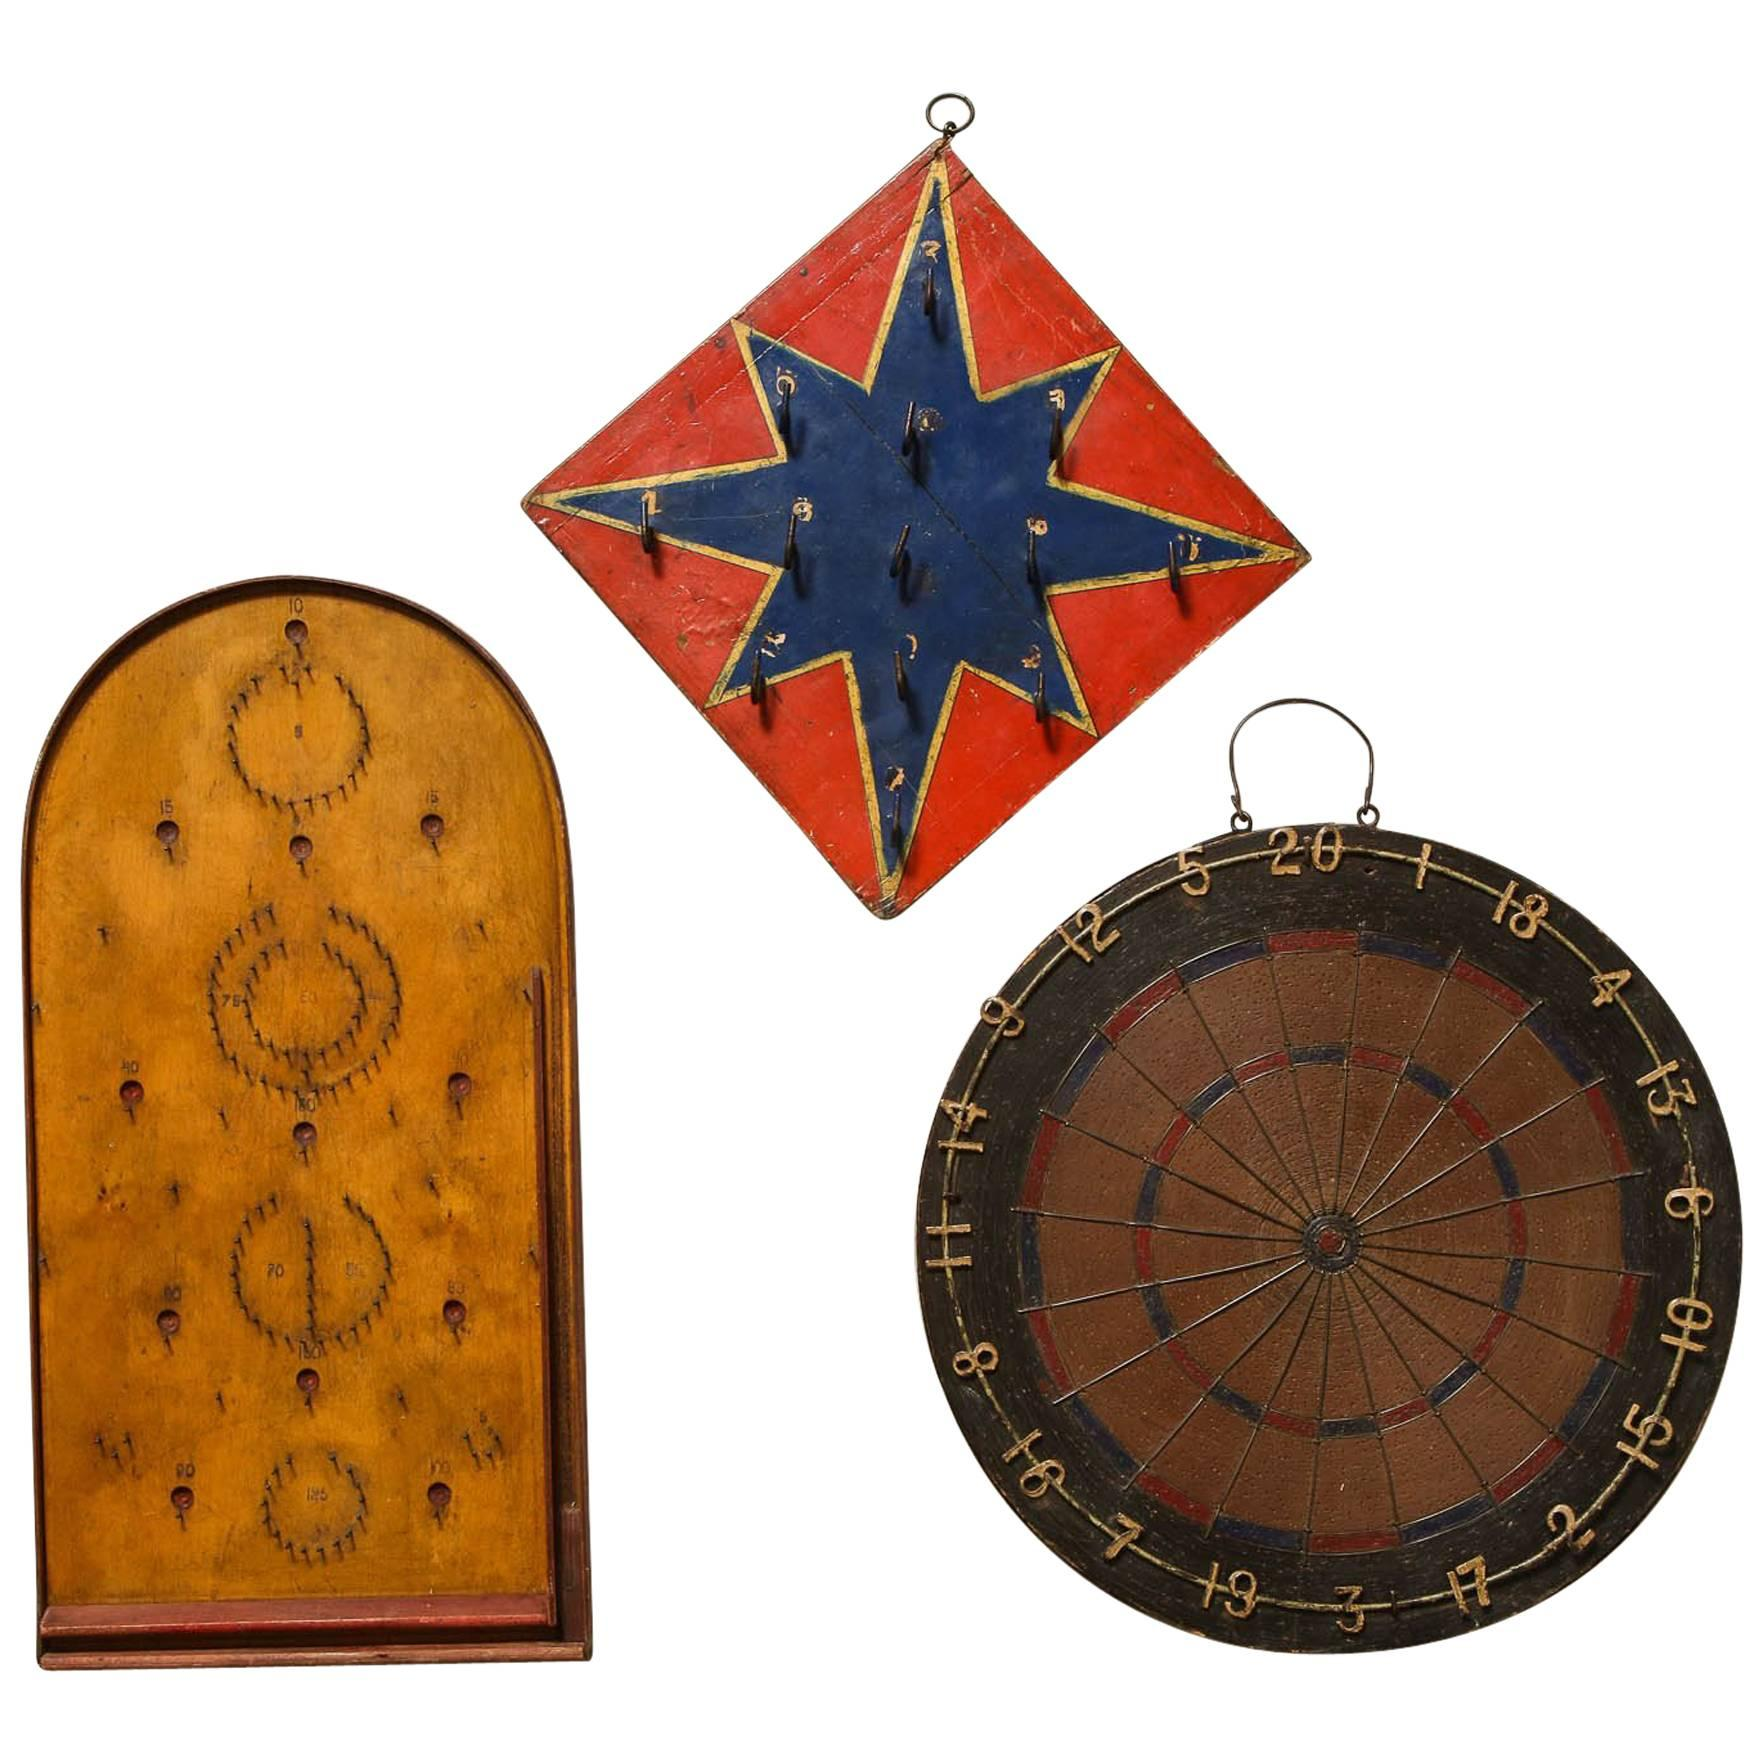 Collection of 19th Century Graphic Games